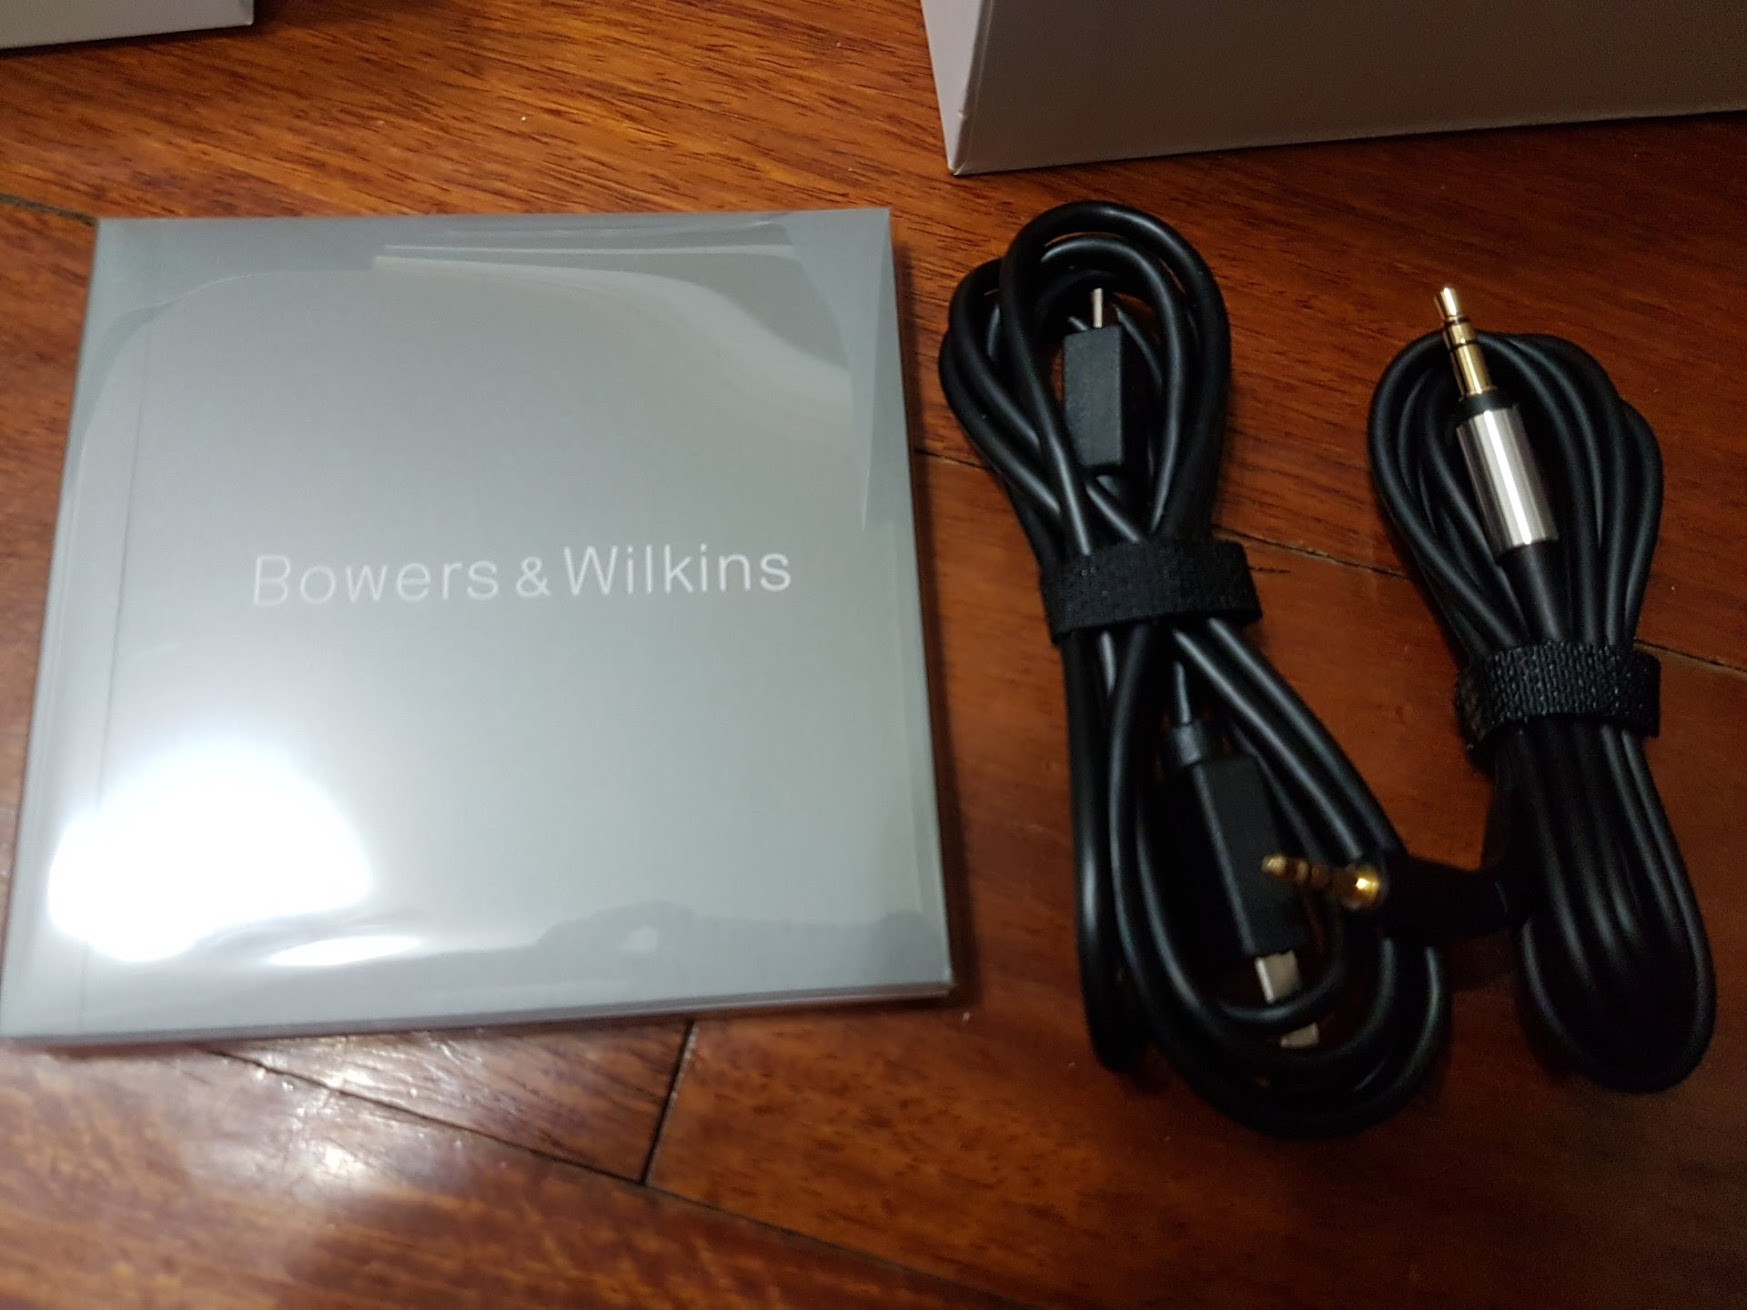 [Bowers & Wilkins] B&W P7 Wireless無線藍芽耳機